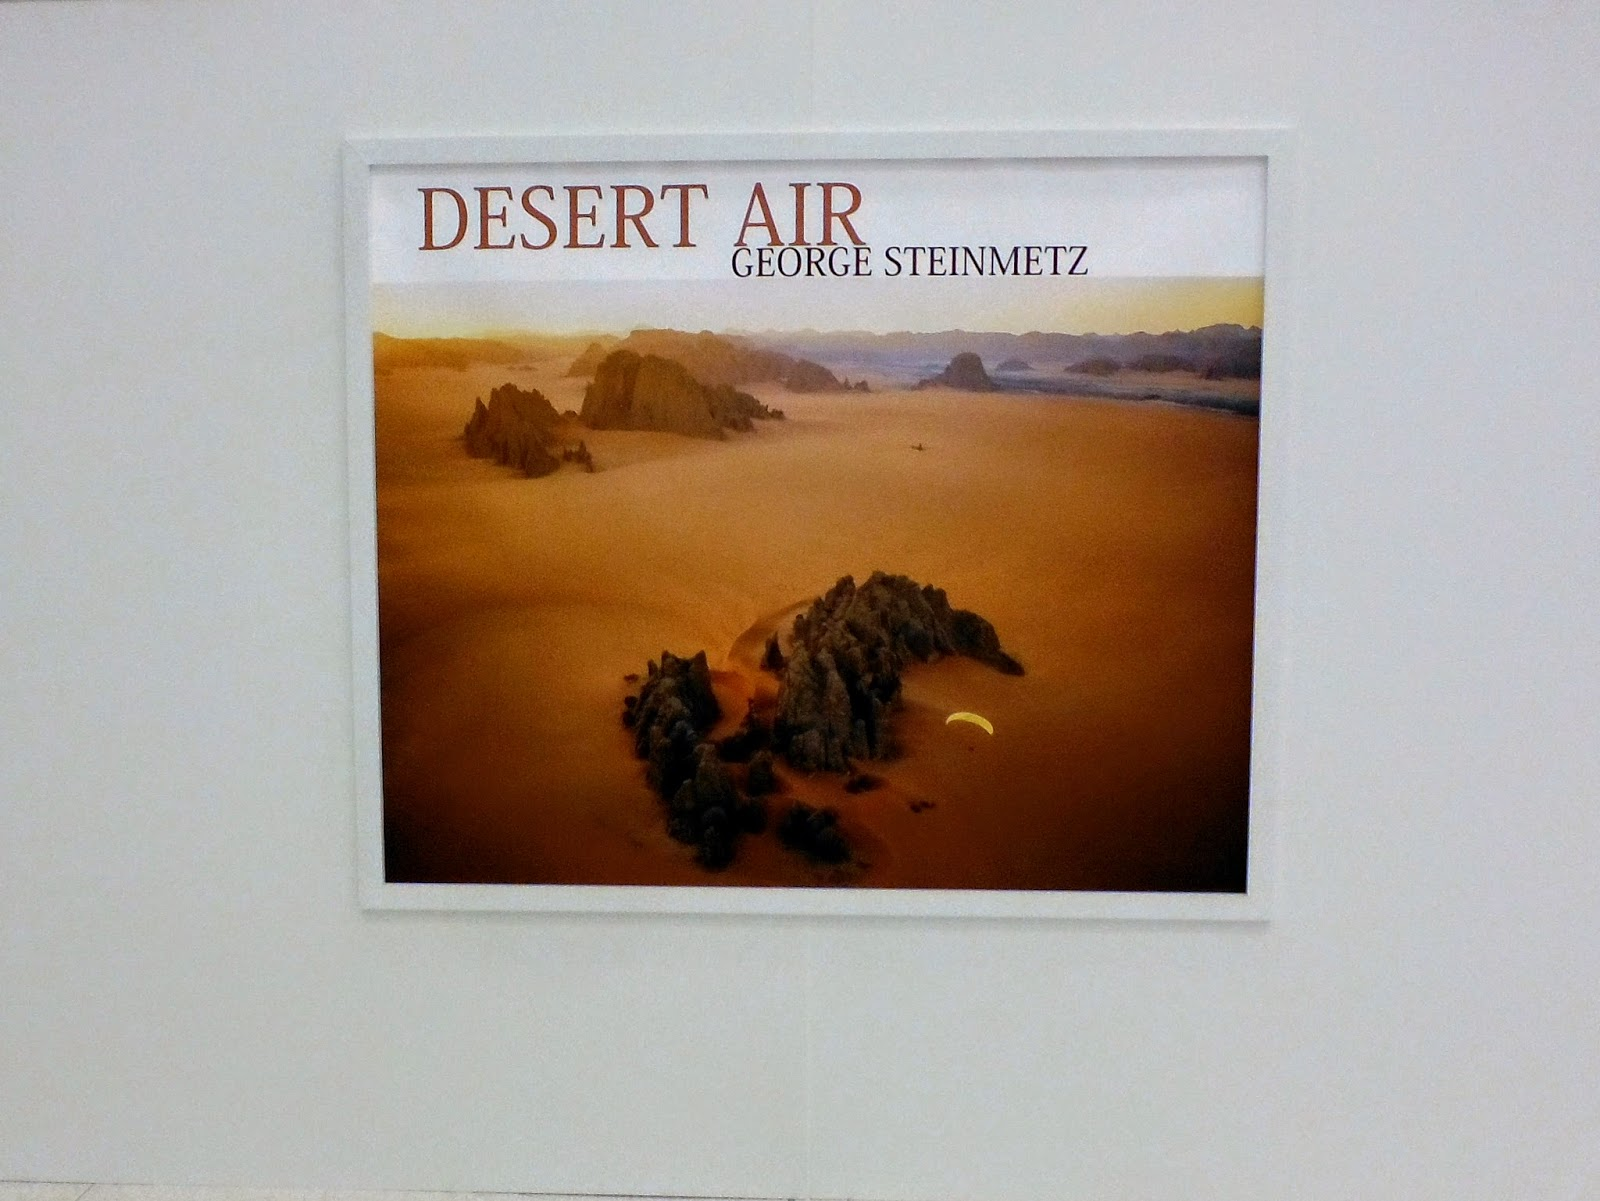 Scotiabank CONTACT Photography Festival: Desert Air by George Steinmetz Exhibit, First Canadian Place, Toronto Culture Art Photos, Melanie.Ps, The Purple Scarf